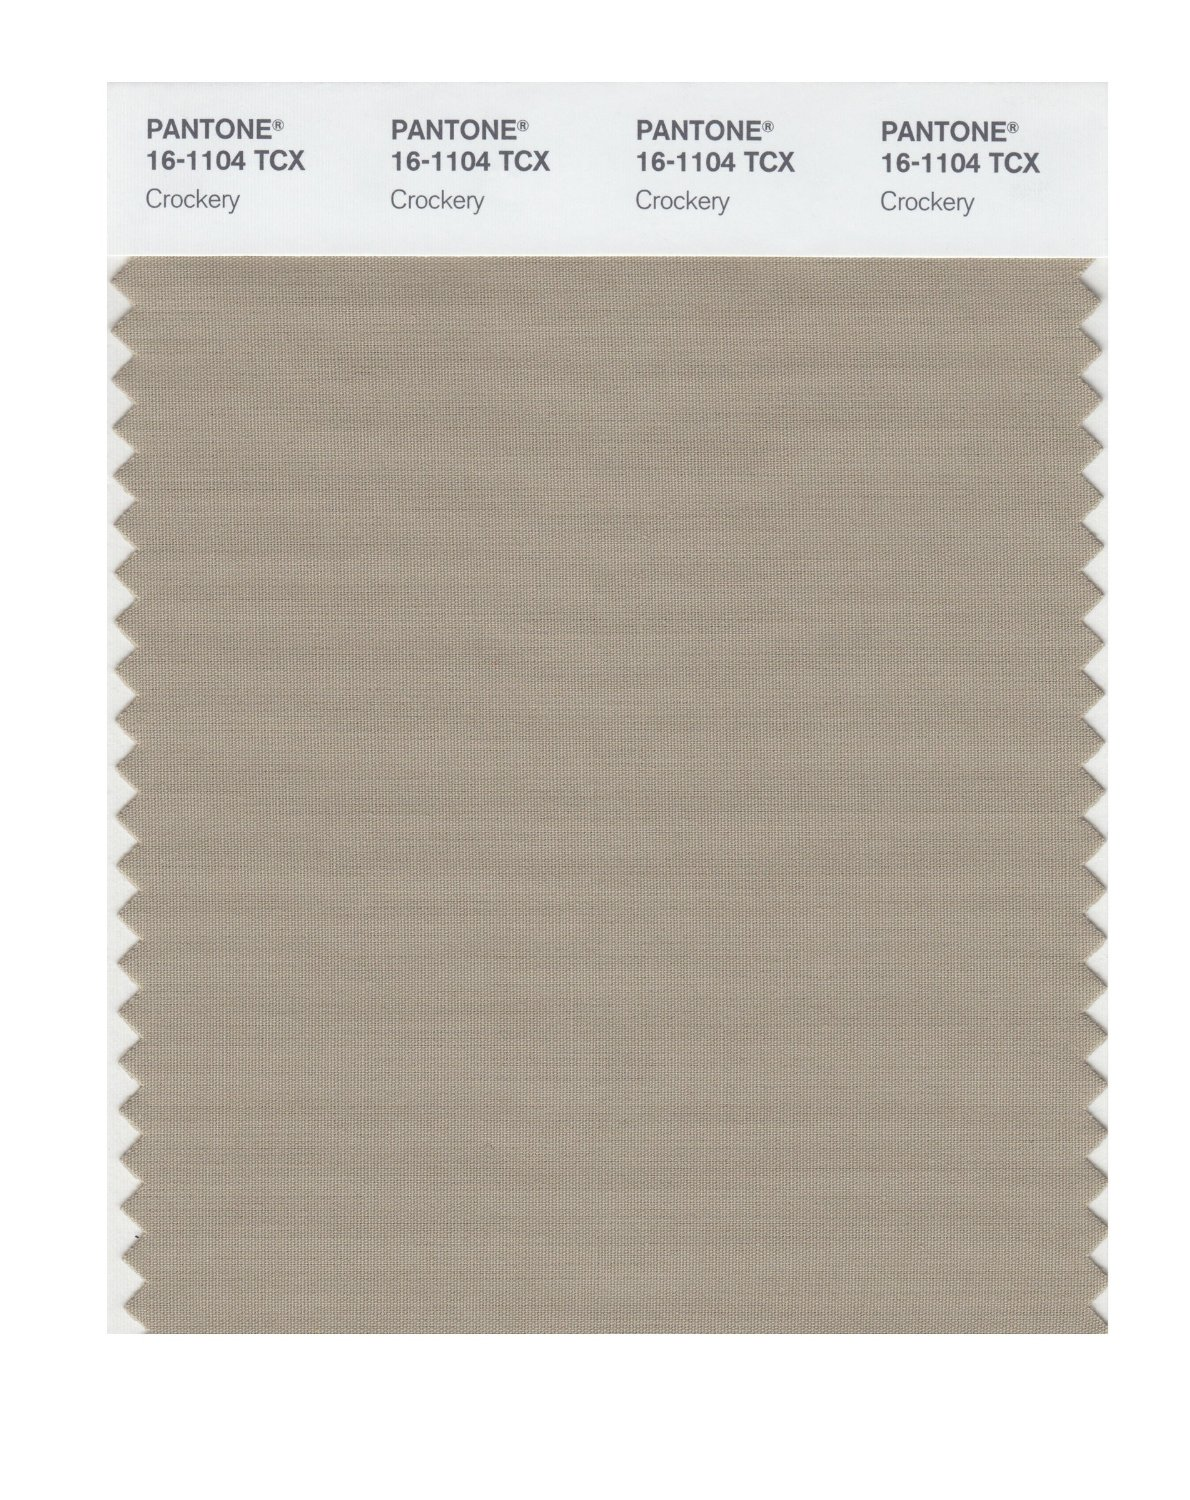 Pantone Smart Swatch 16-1104 Crockery